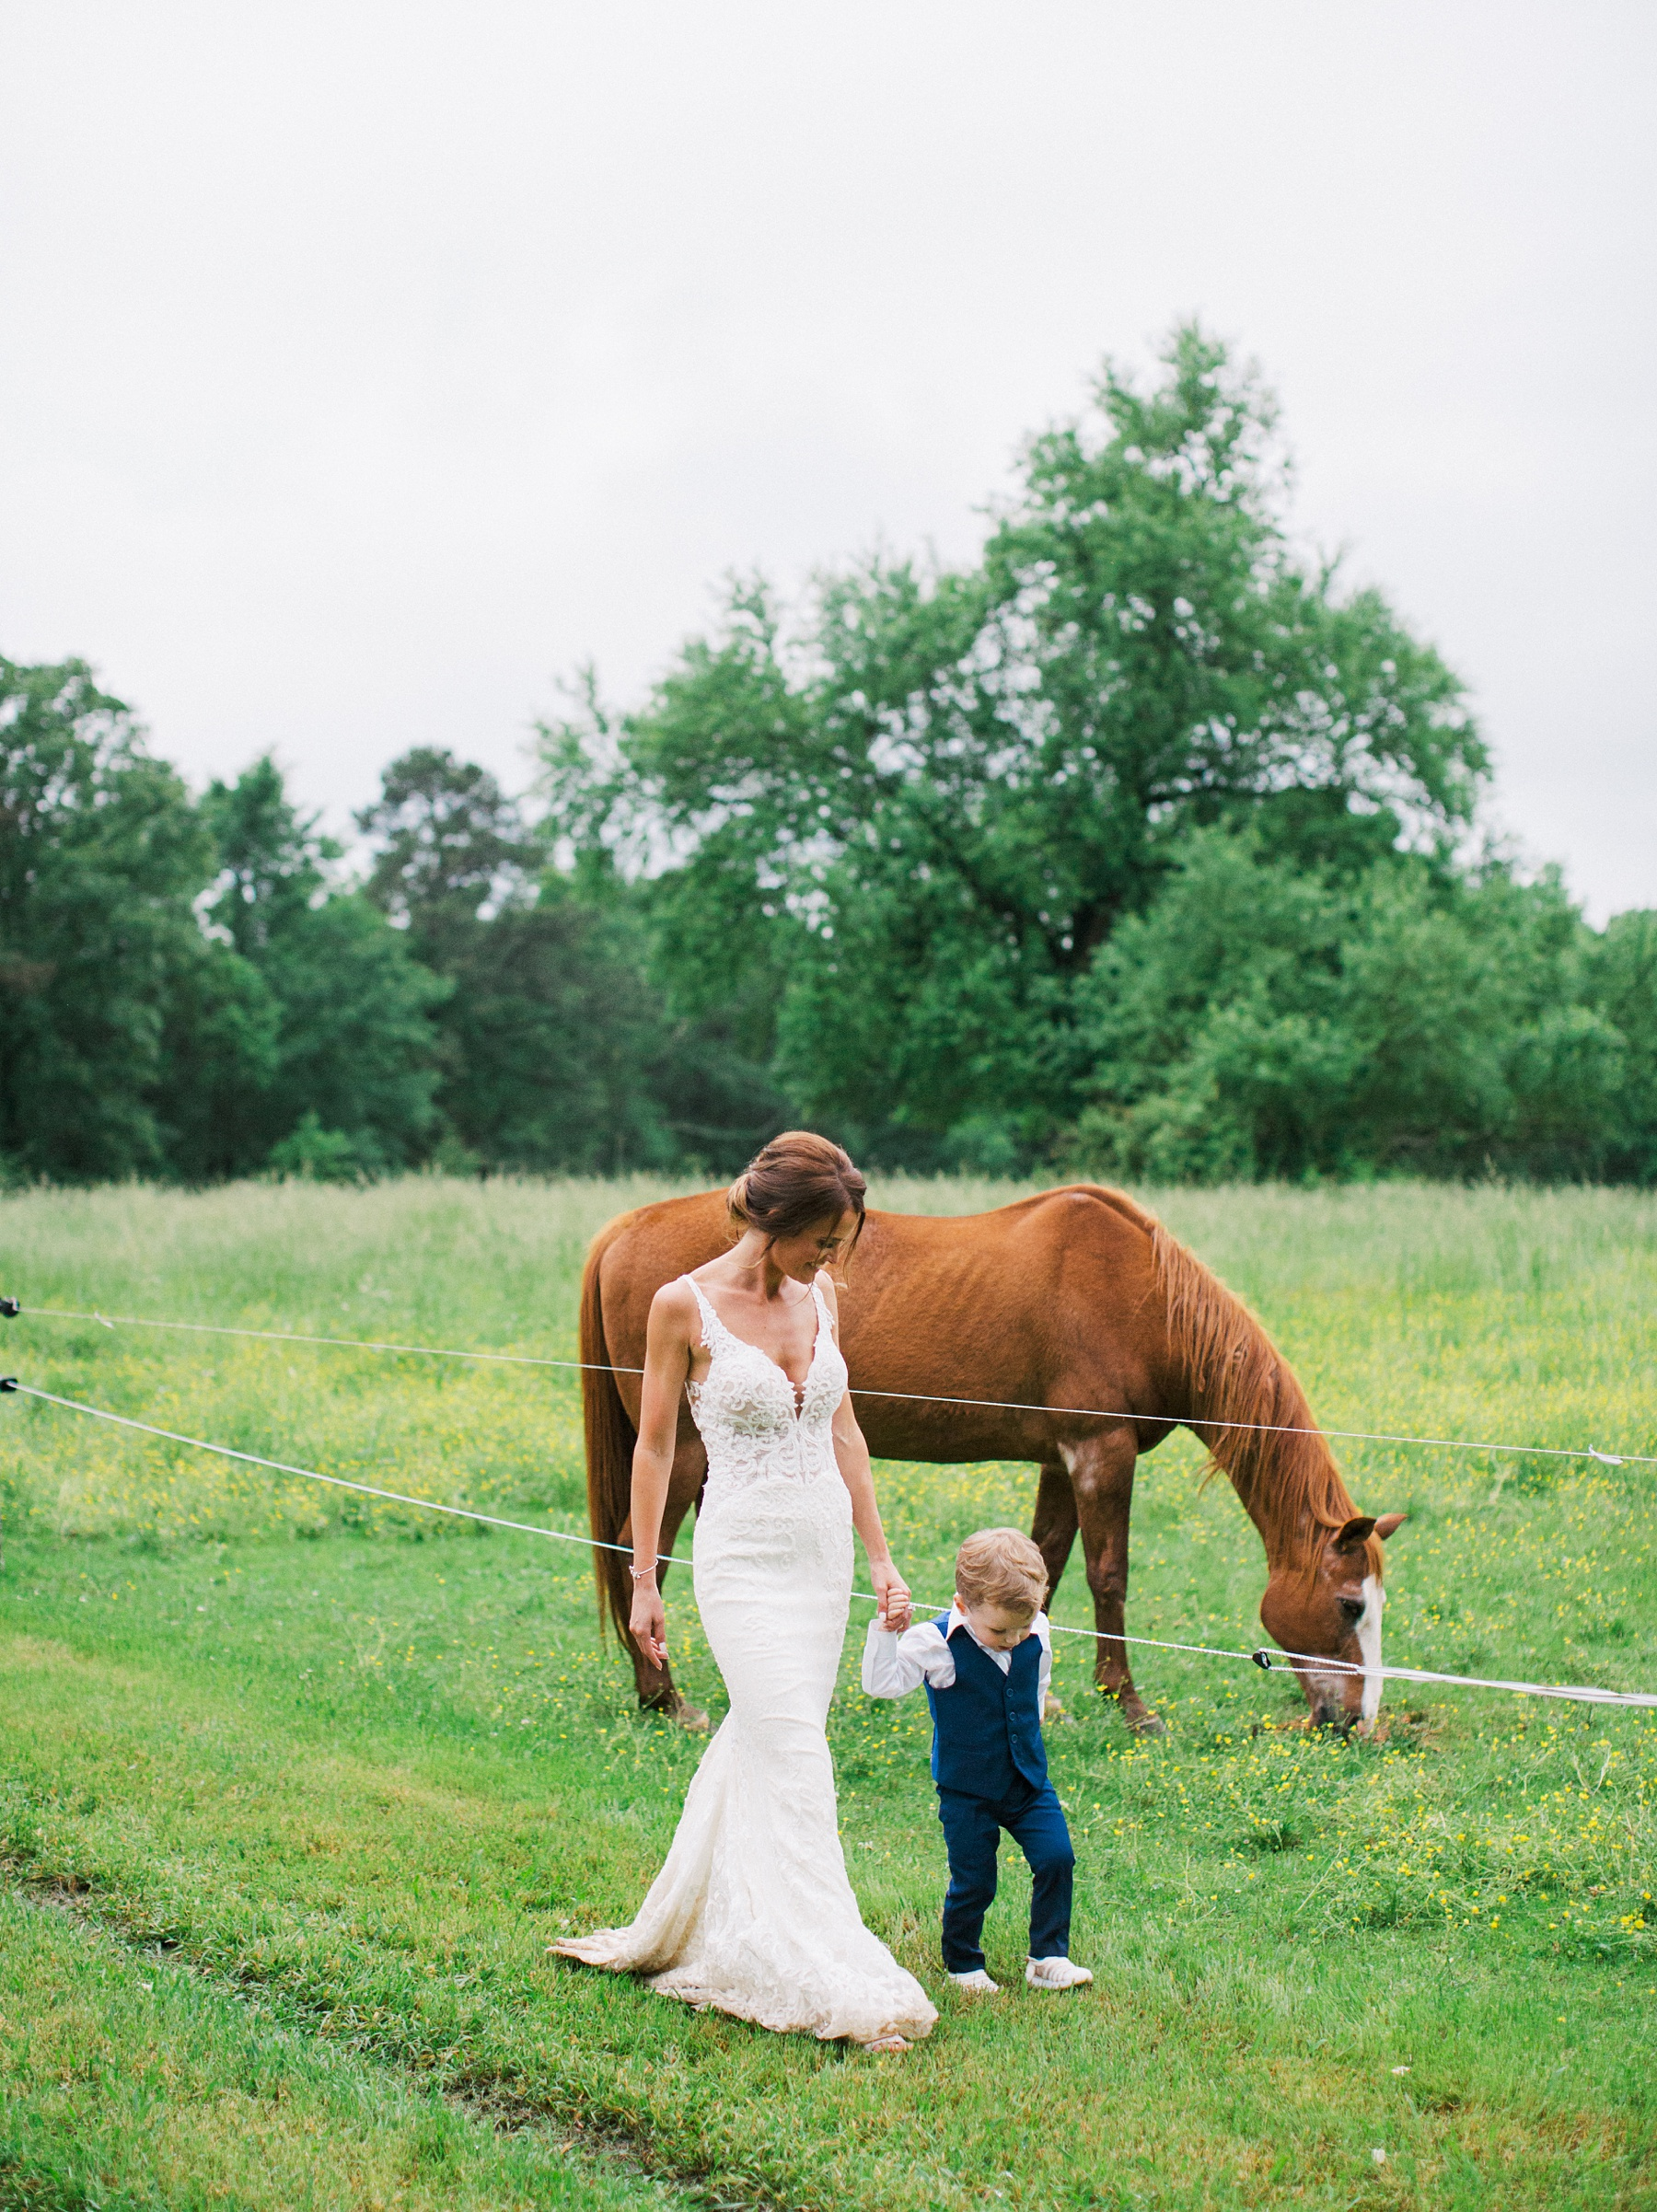 Hedge Farm Weddings Tennessee Wedding Photographer_0633.jpg